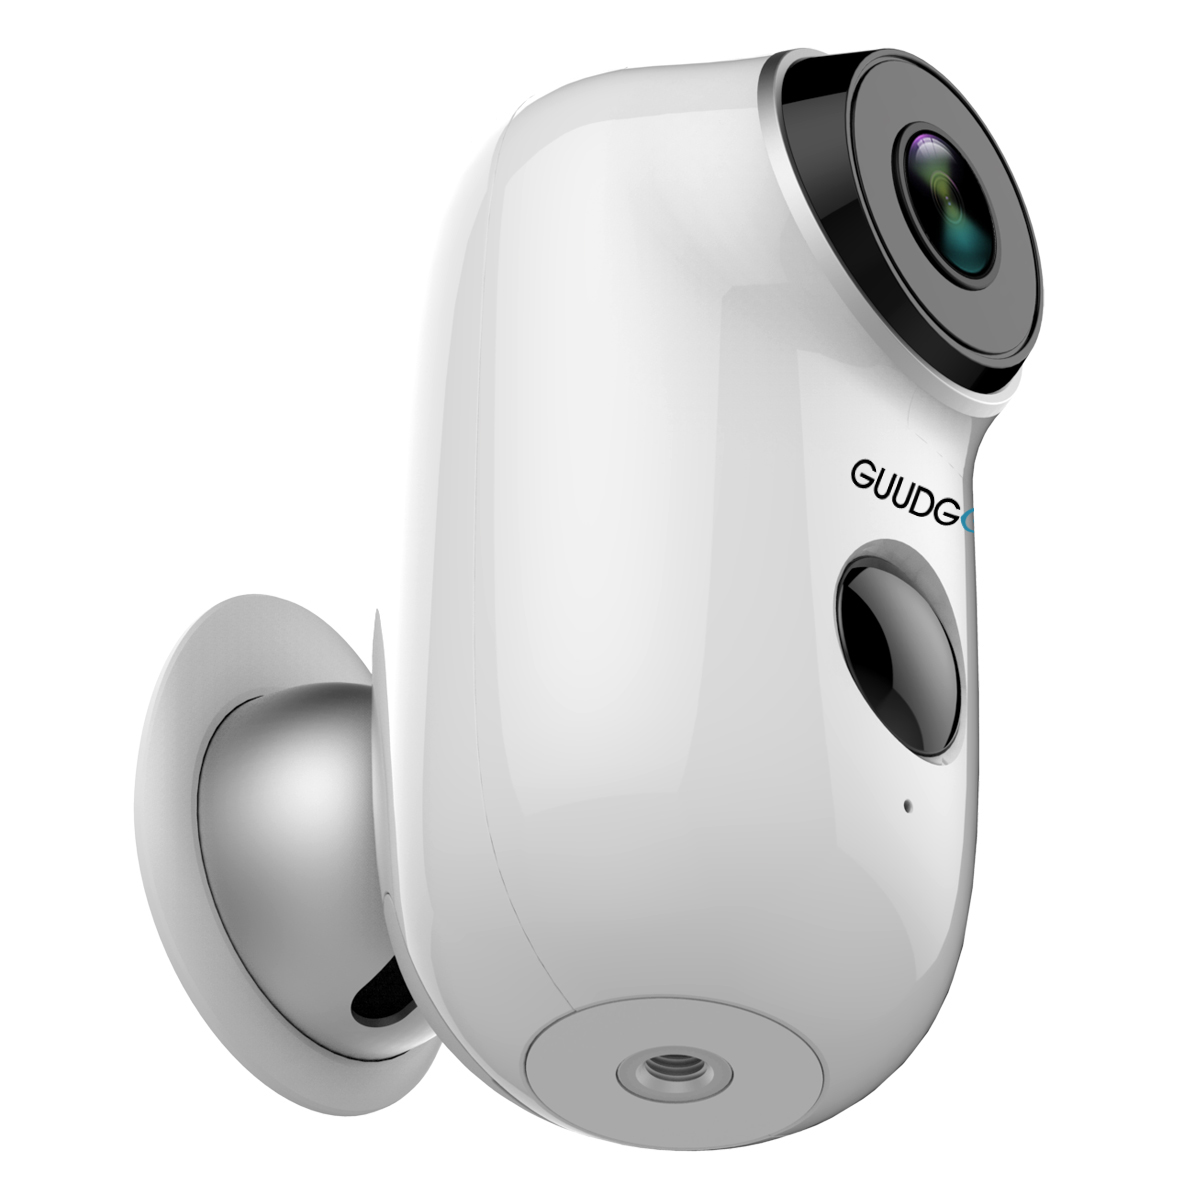 Battery Operated Security Camera >> Guudgo A3 And Solar Panel 1080p Wireless Rechargeable Battery